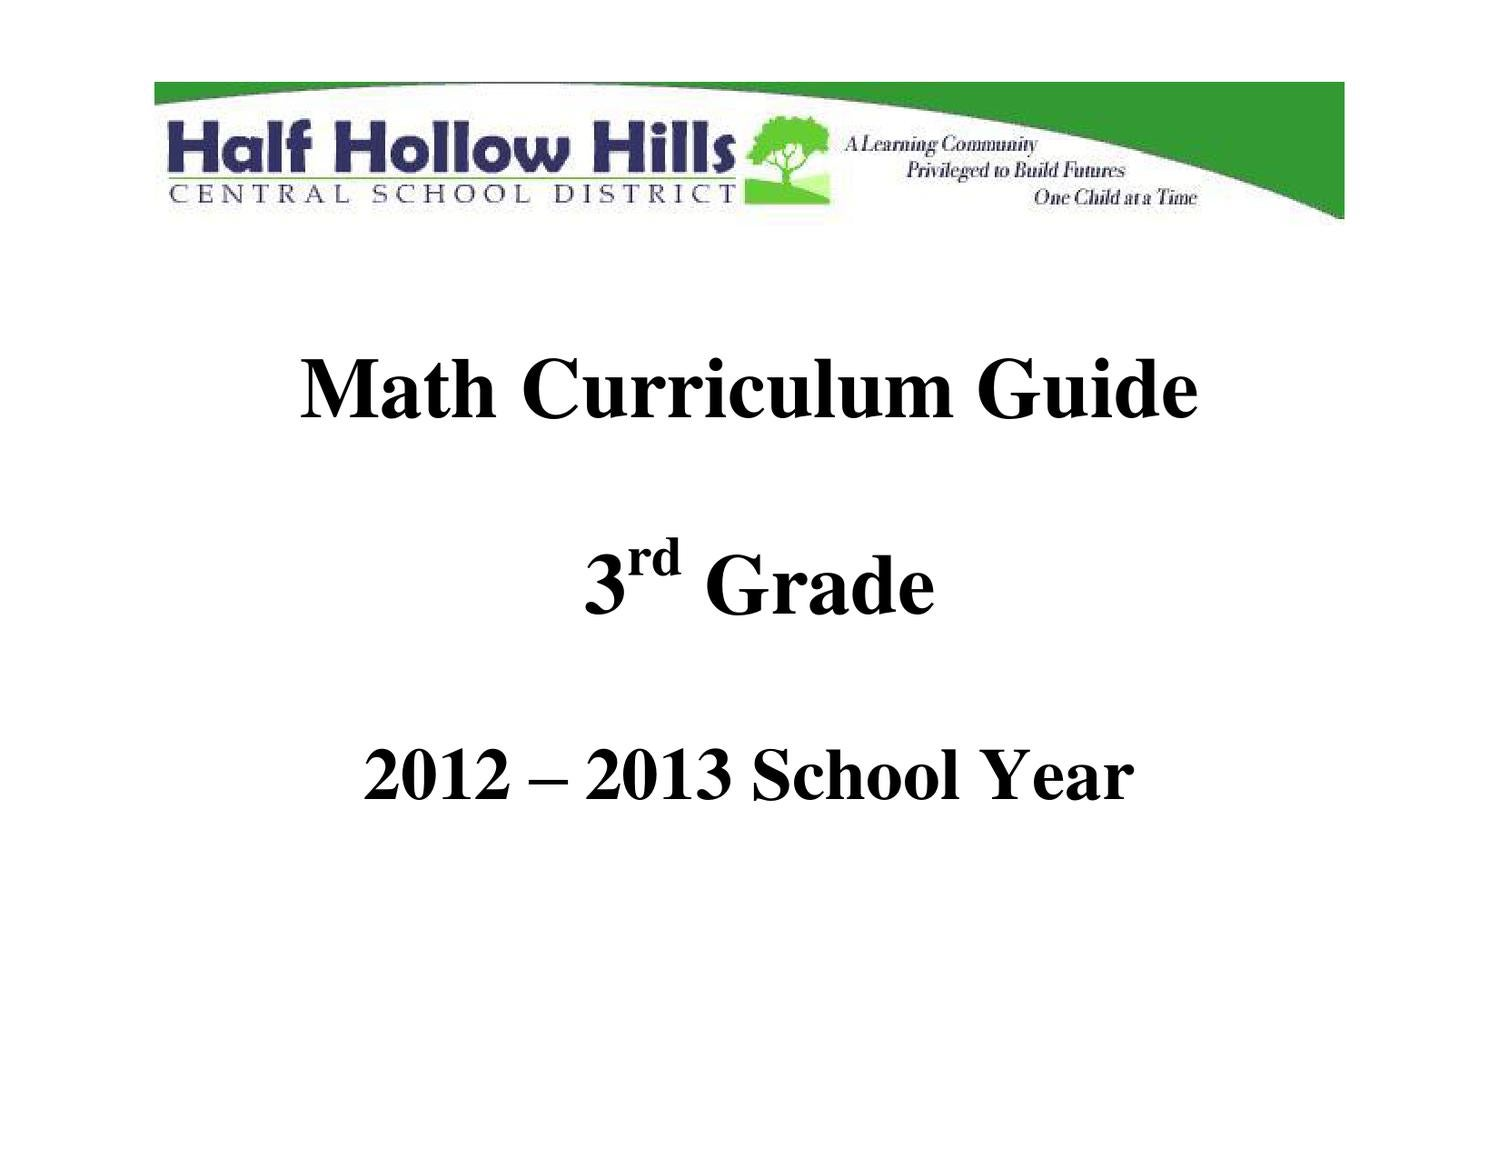 hight resolution of Math 3 Curriculum Guide 12-13 by Half Hollow Hills Schools - issuu